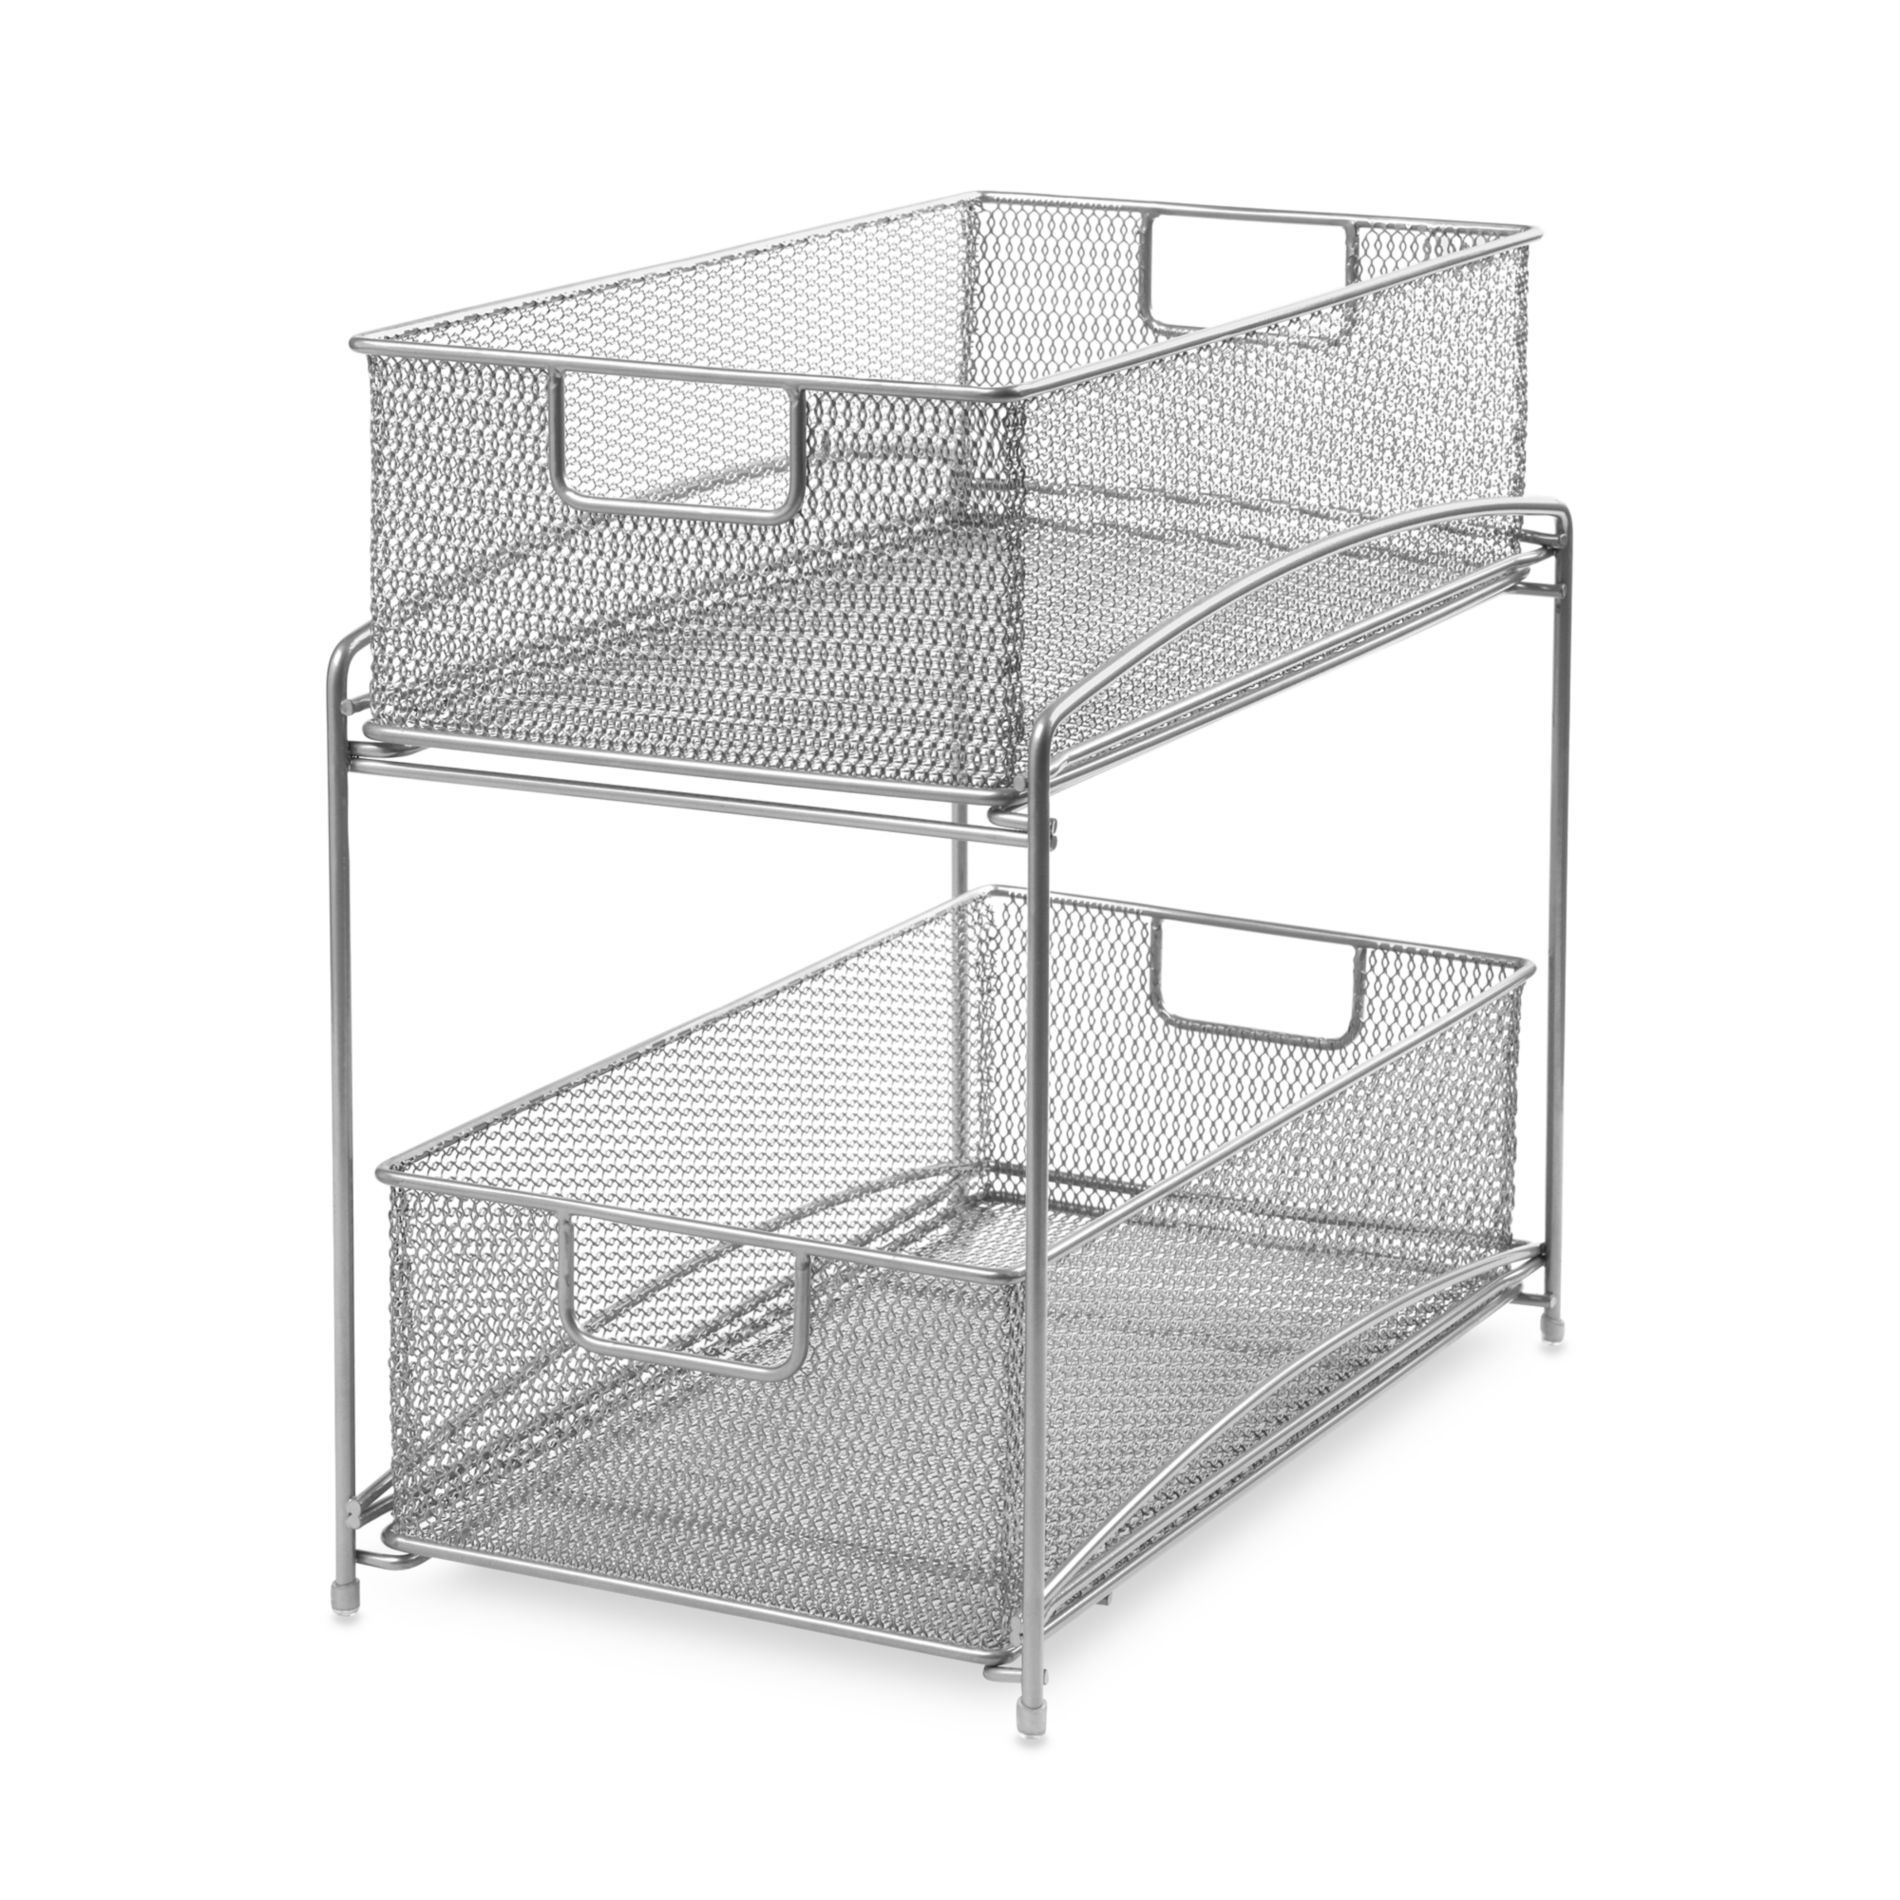 Uncategorized Sliding Basket Organizer two tier sliding basket organizer bedbathandbeyond com for organizing cleaning supplies under the